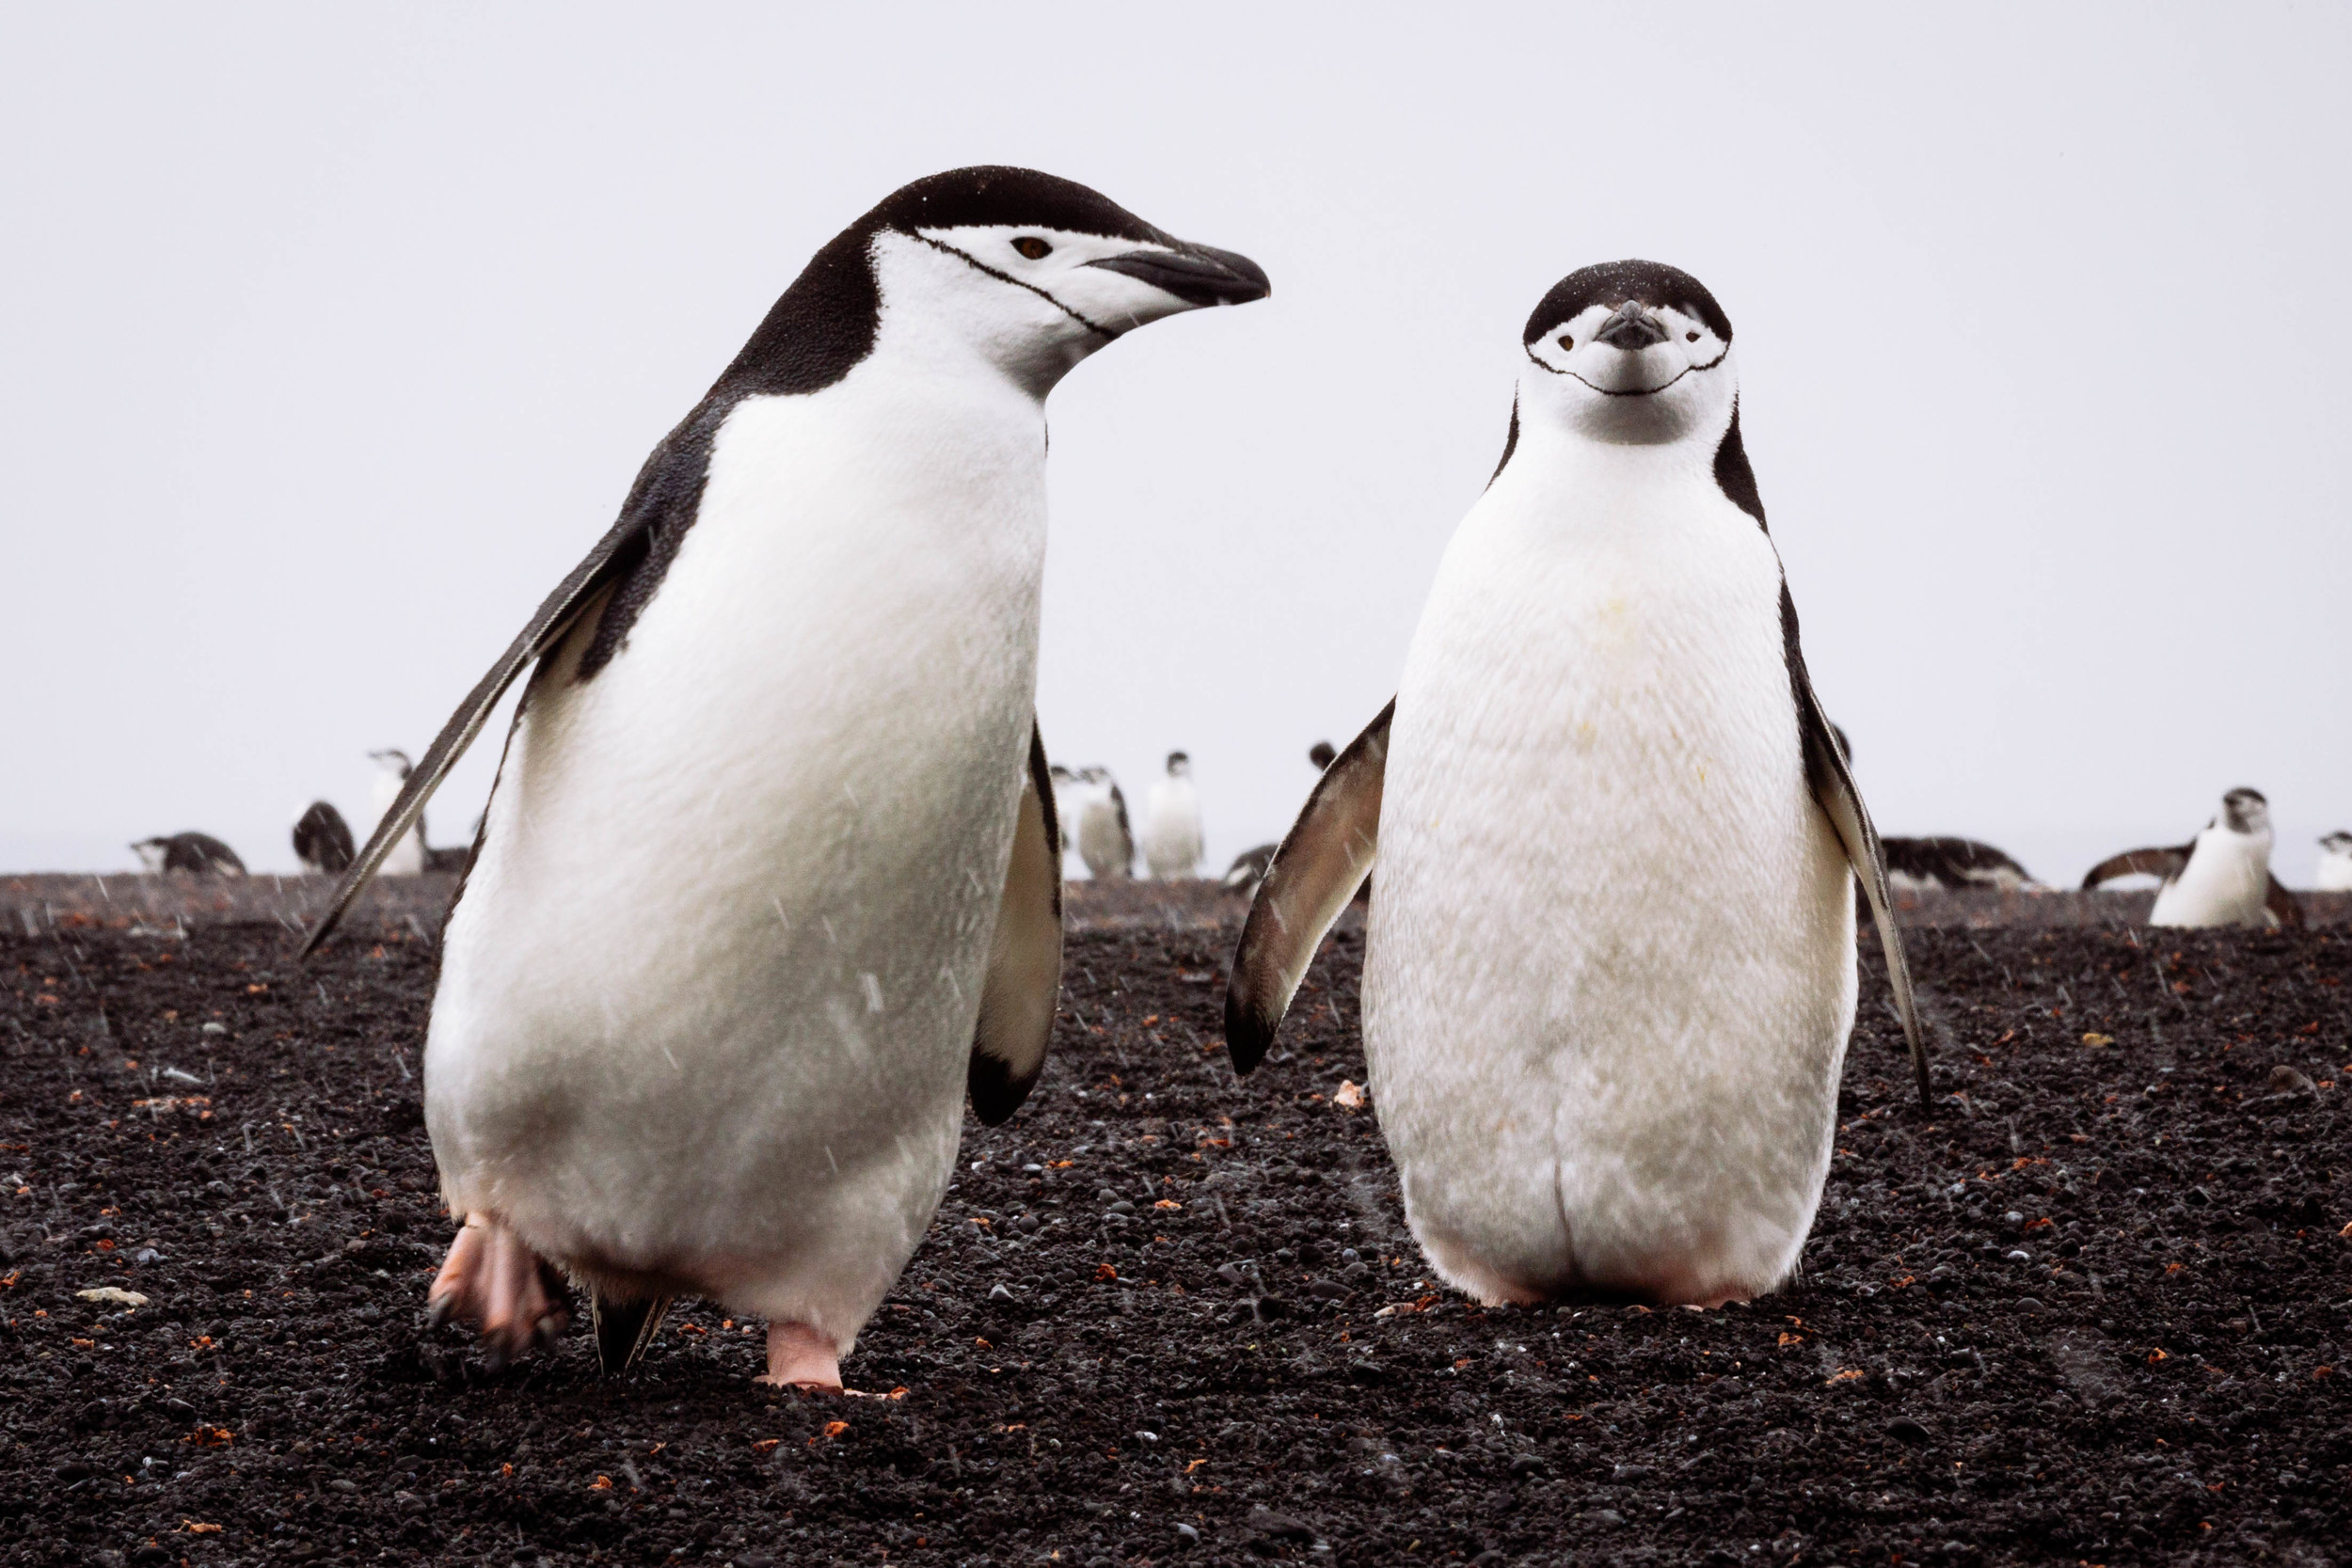 A pair of chinstrap penguins among thousands living on Bailey Head, Deception Island.